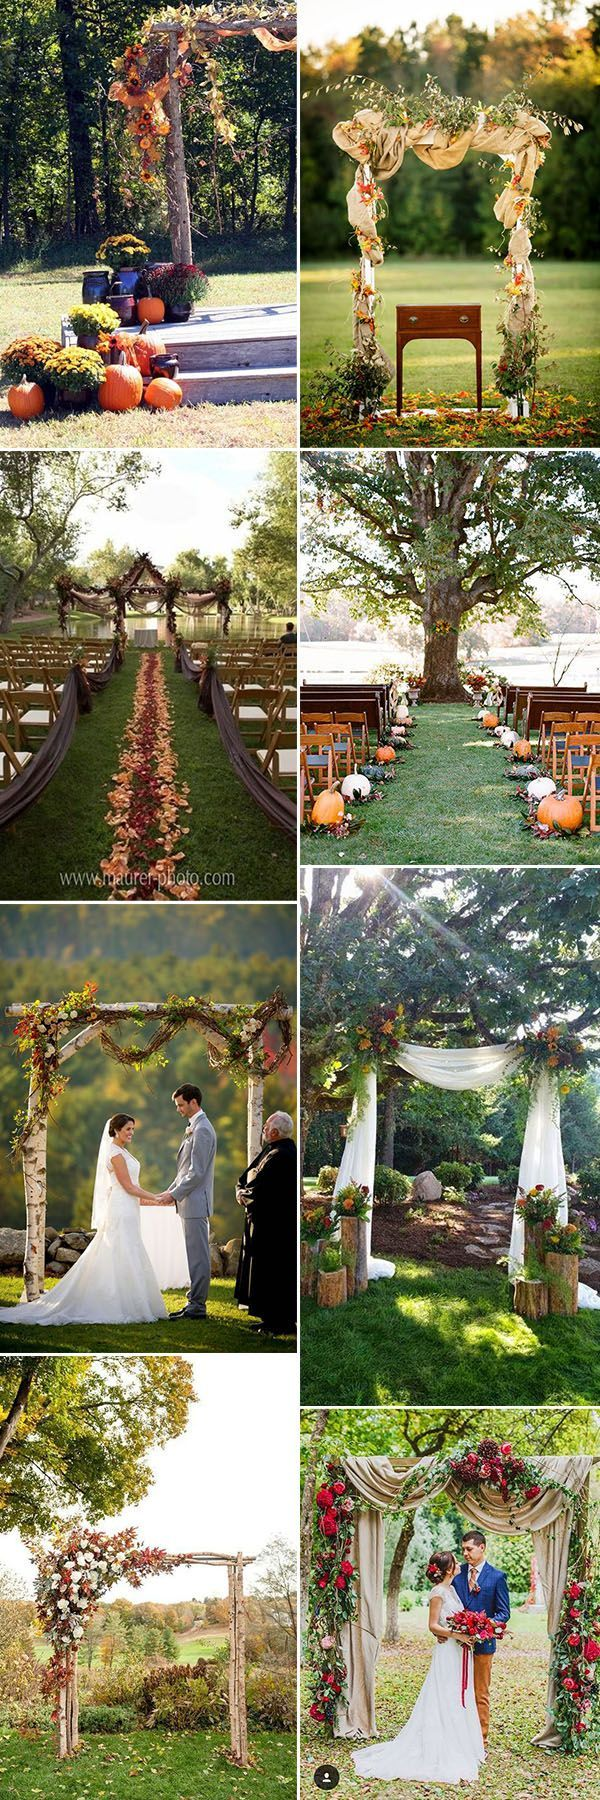 gorgeous fall wedding ceremony and arches ideas